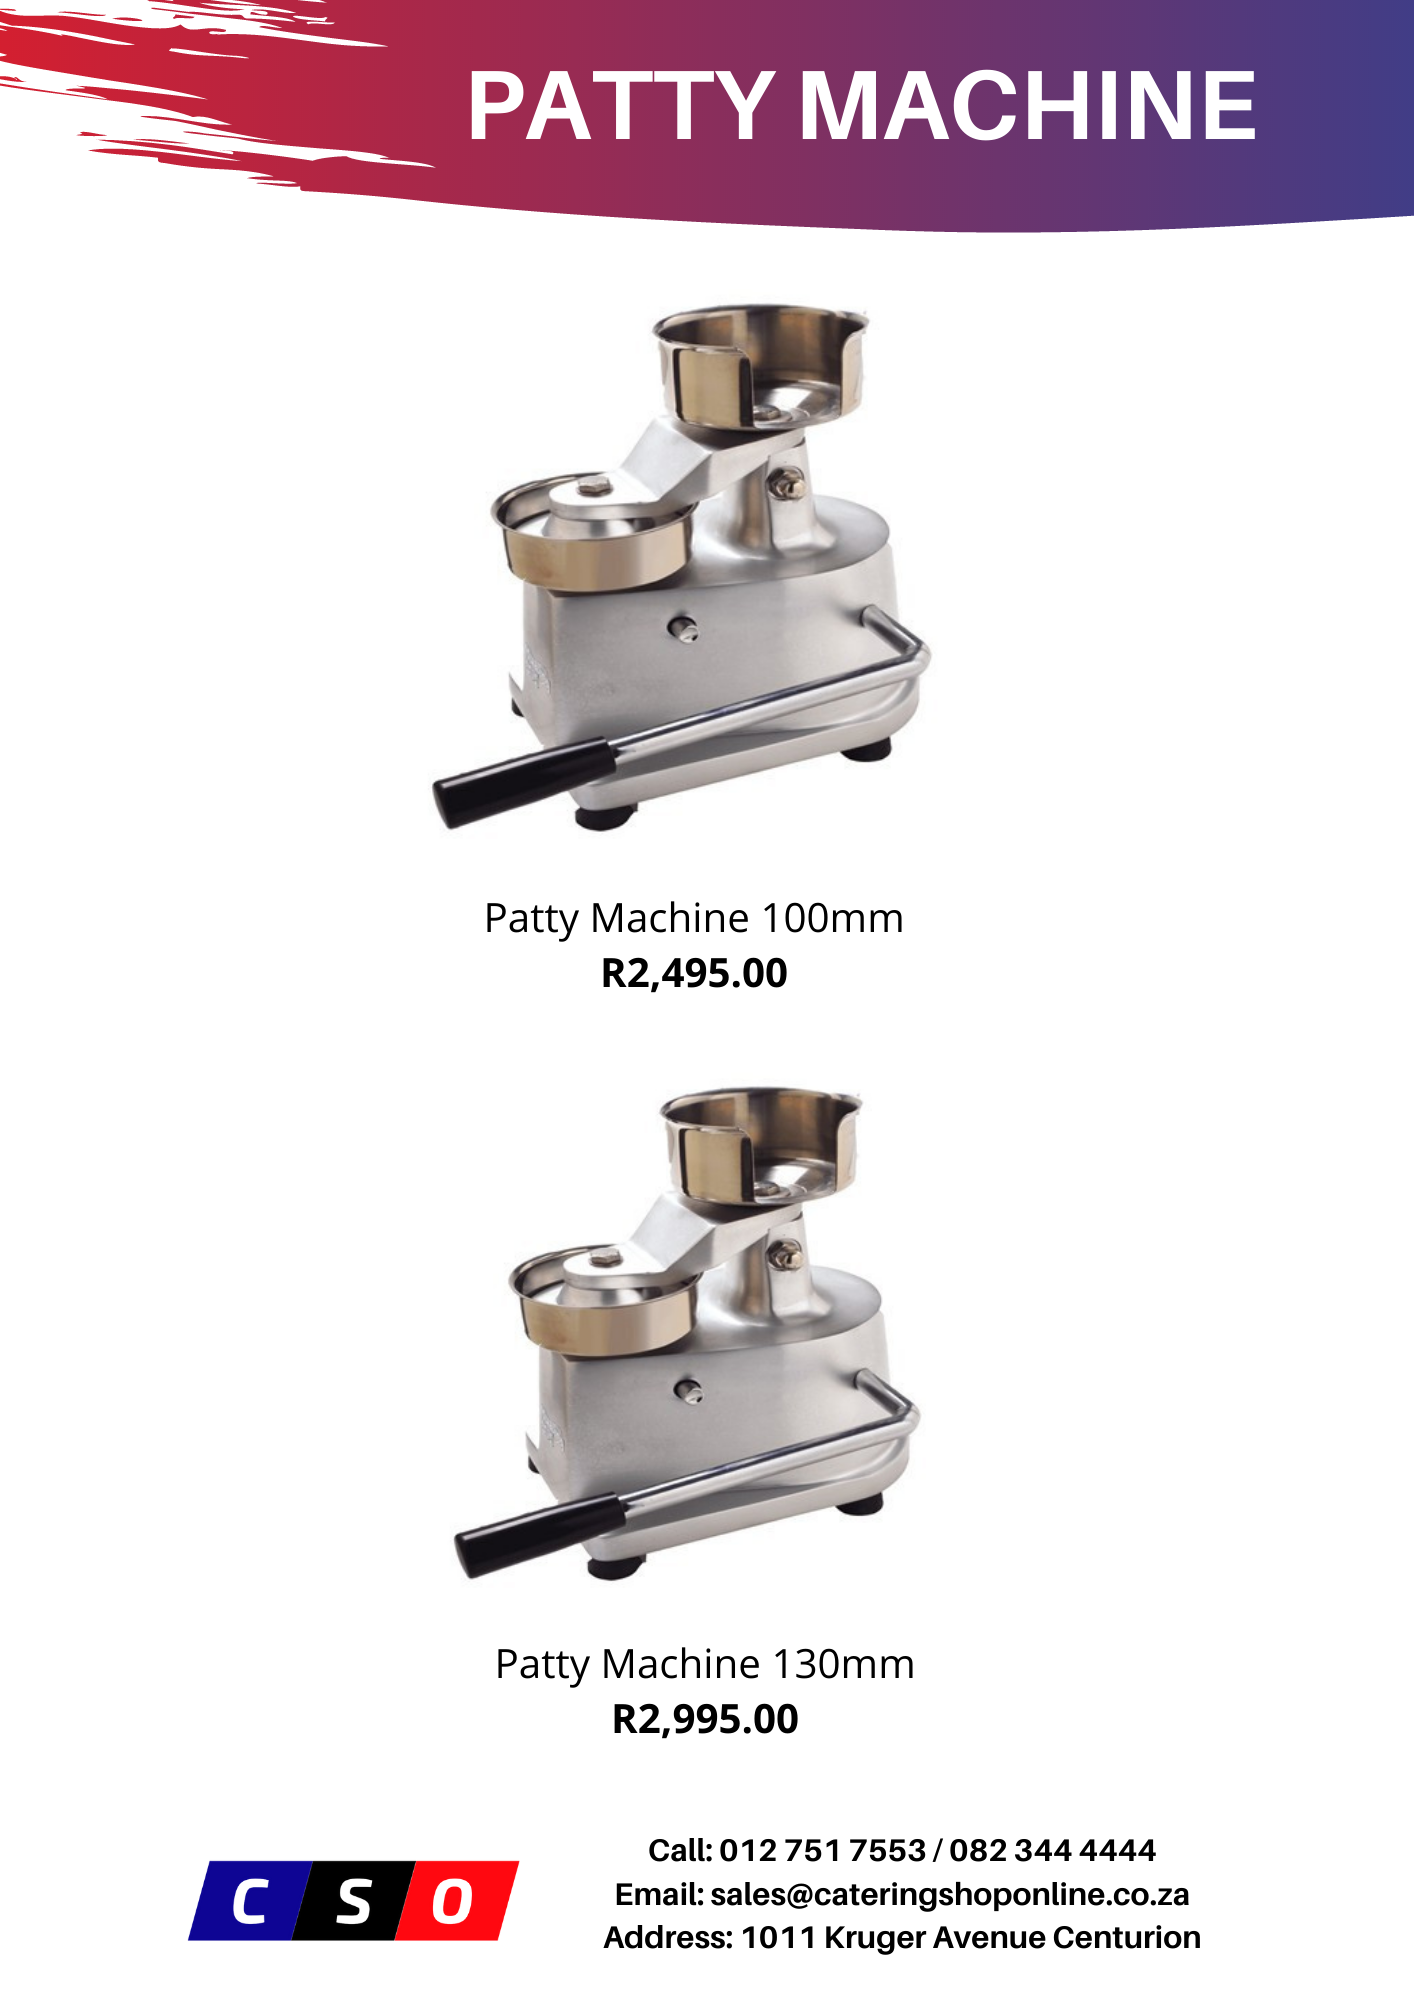 Patty Machines for sale